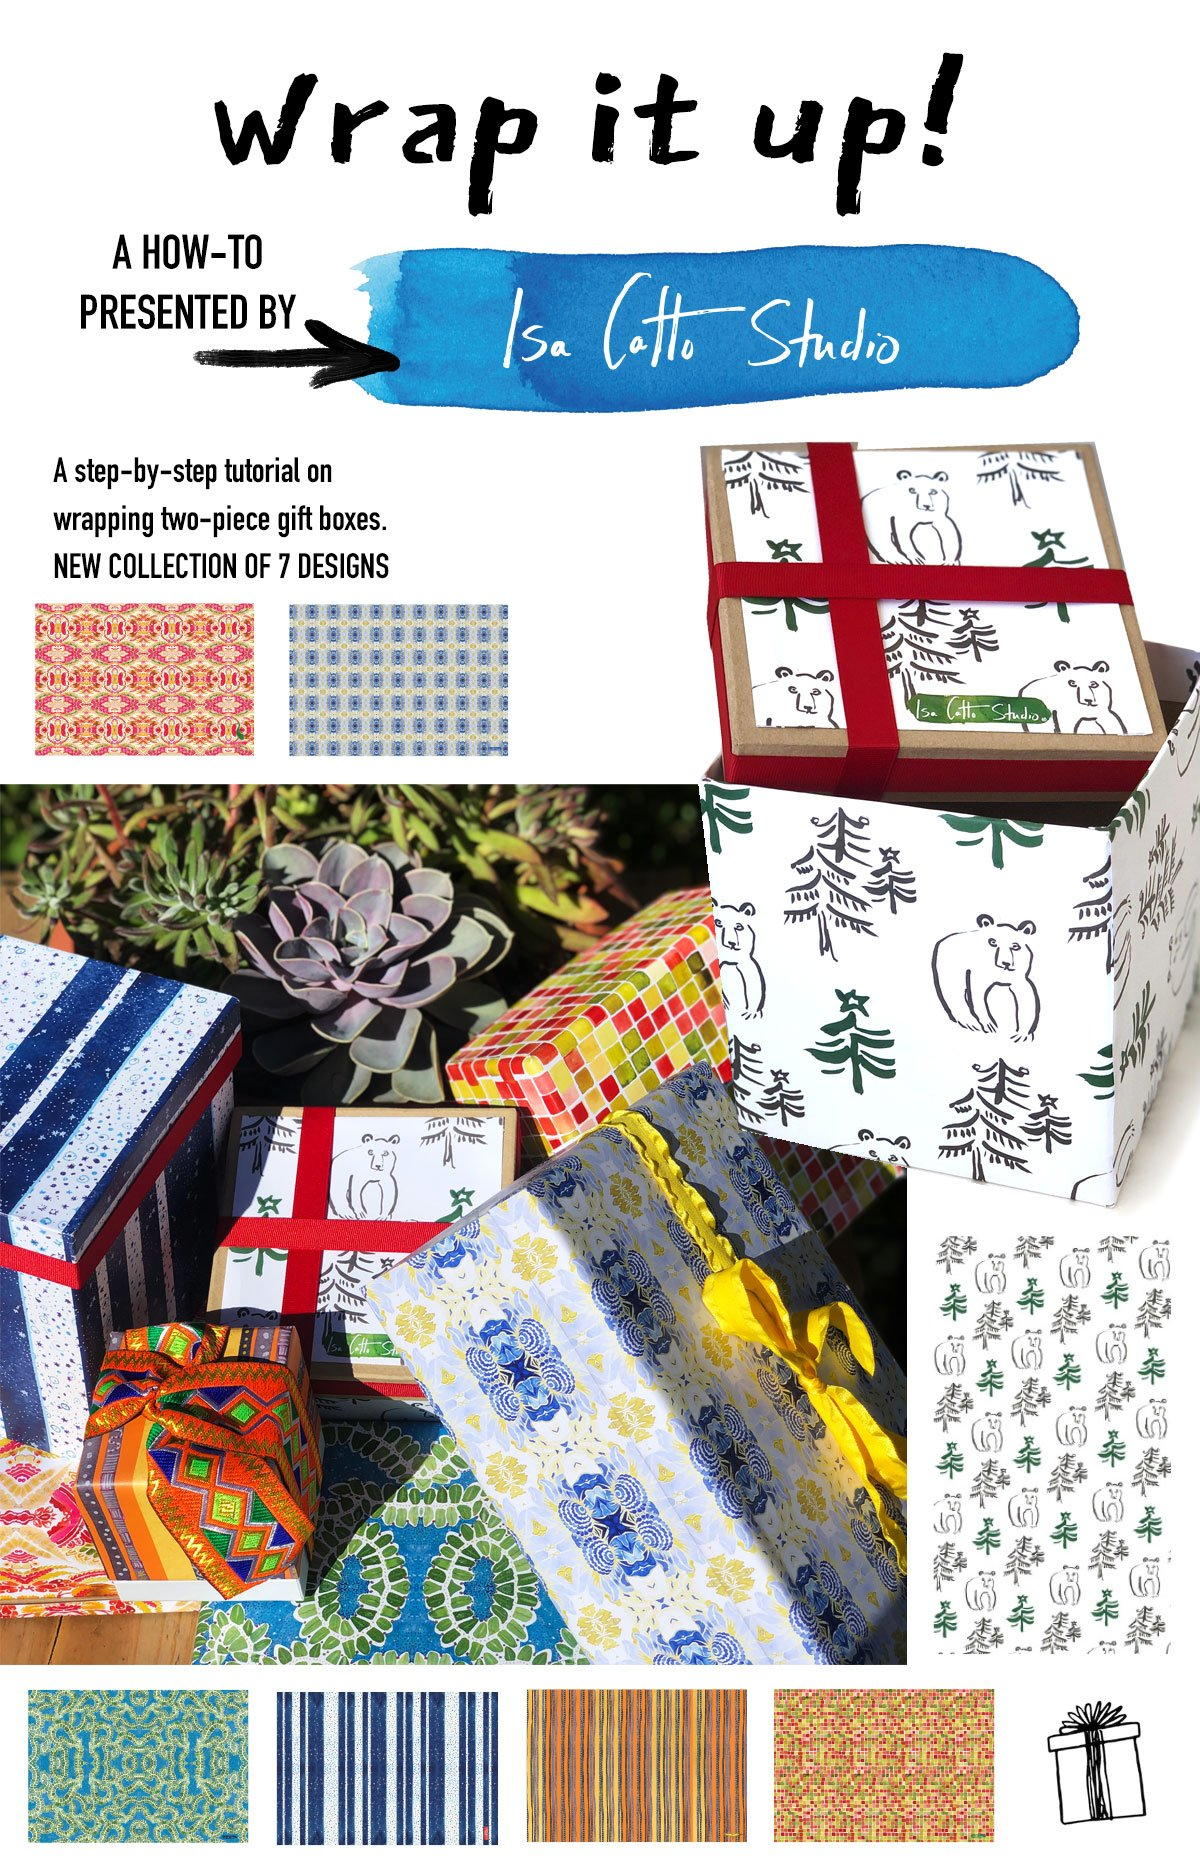 Pinterest ready board with wrapped packages and small images of 7 new wrapping paper designs